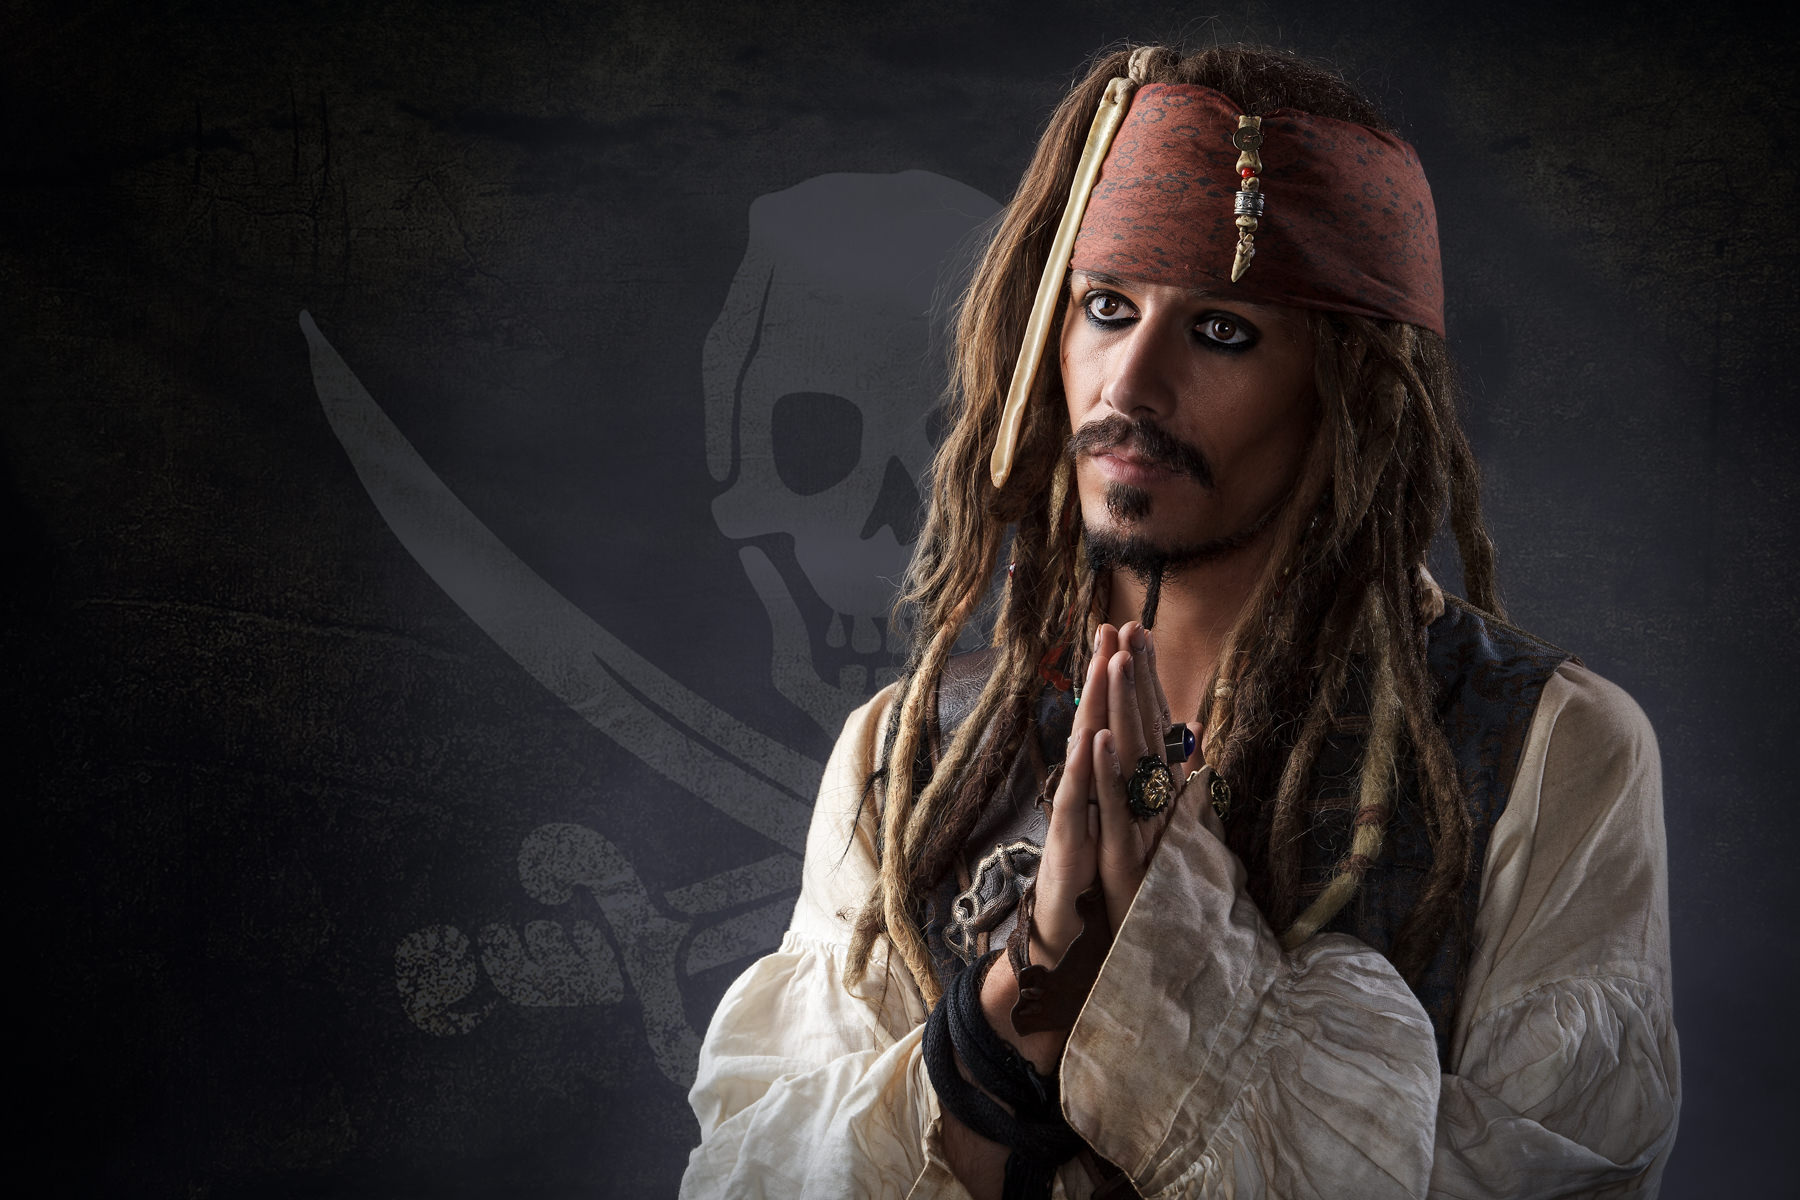 Jack Sparrow praying with skull & crossbones